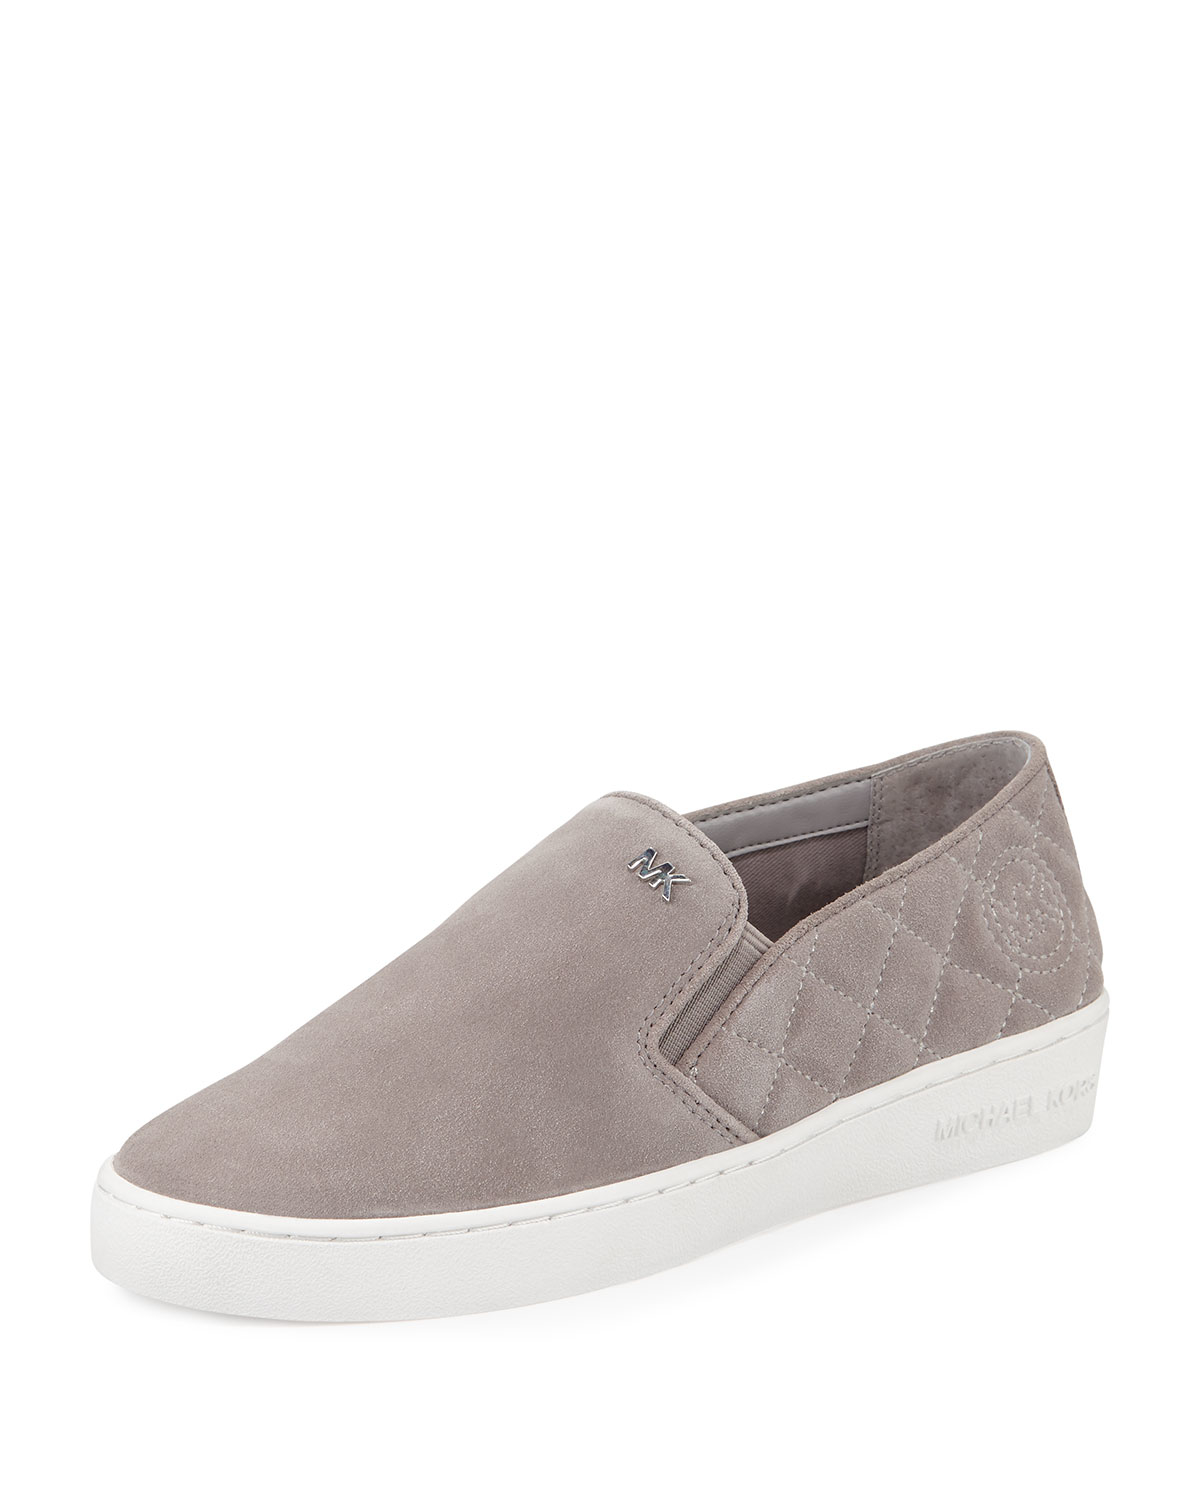 Michael Michael Kors Keaton Quilted Suede Slip On Sneakers